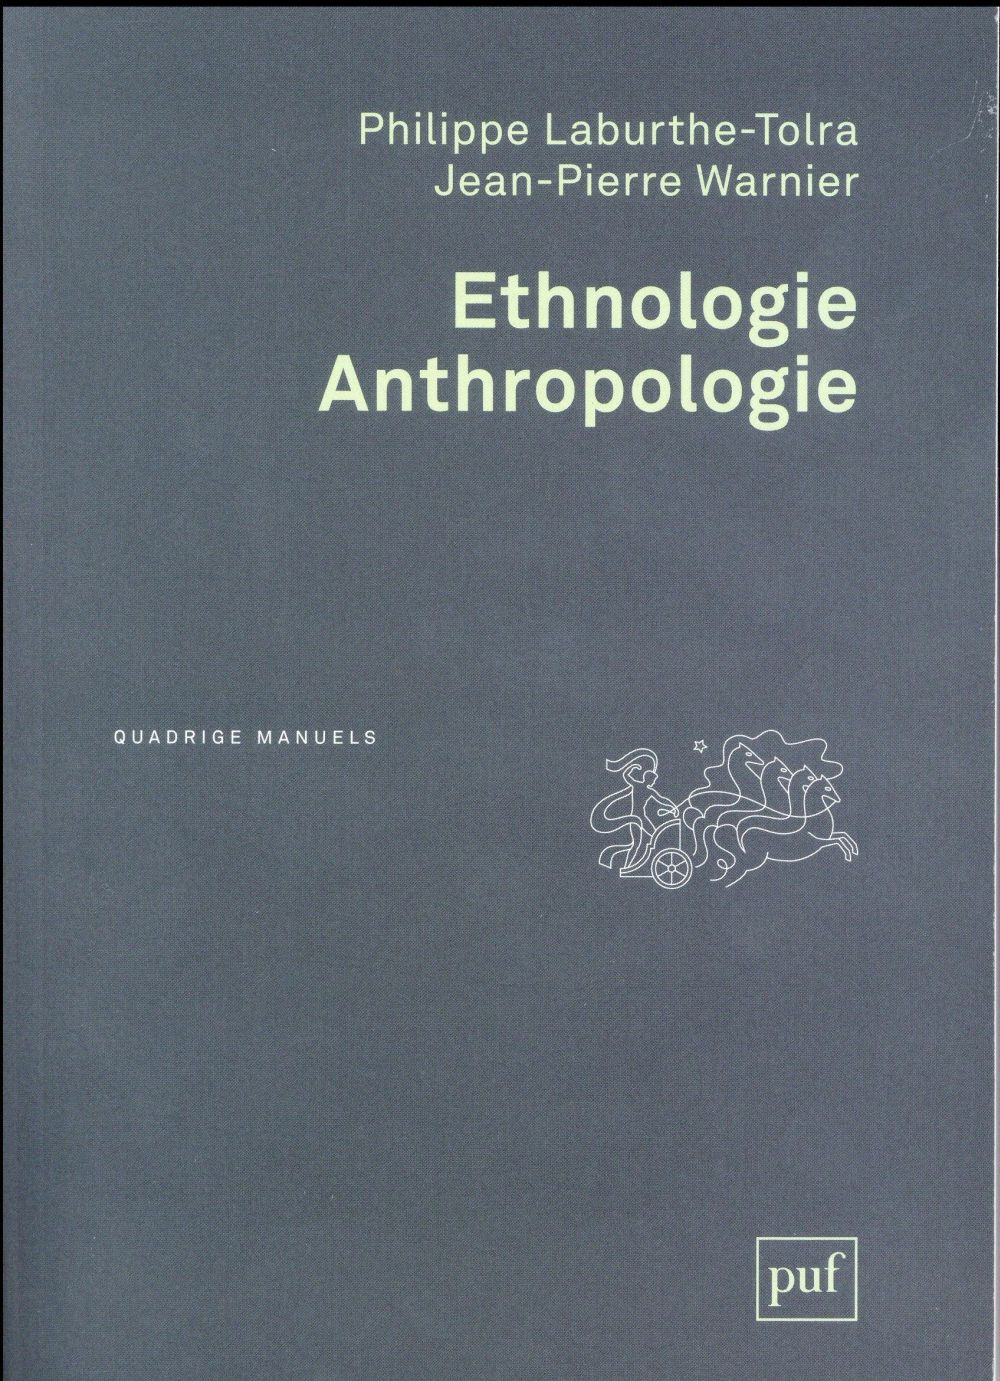 Ethnologie anthropologie (2e édition)